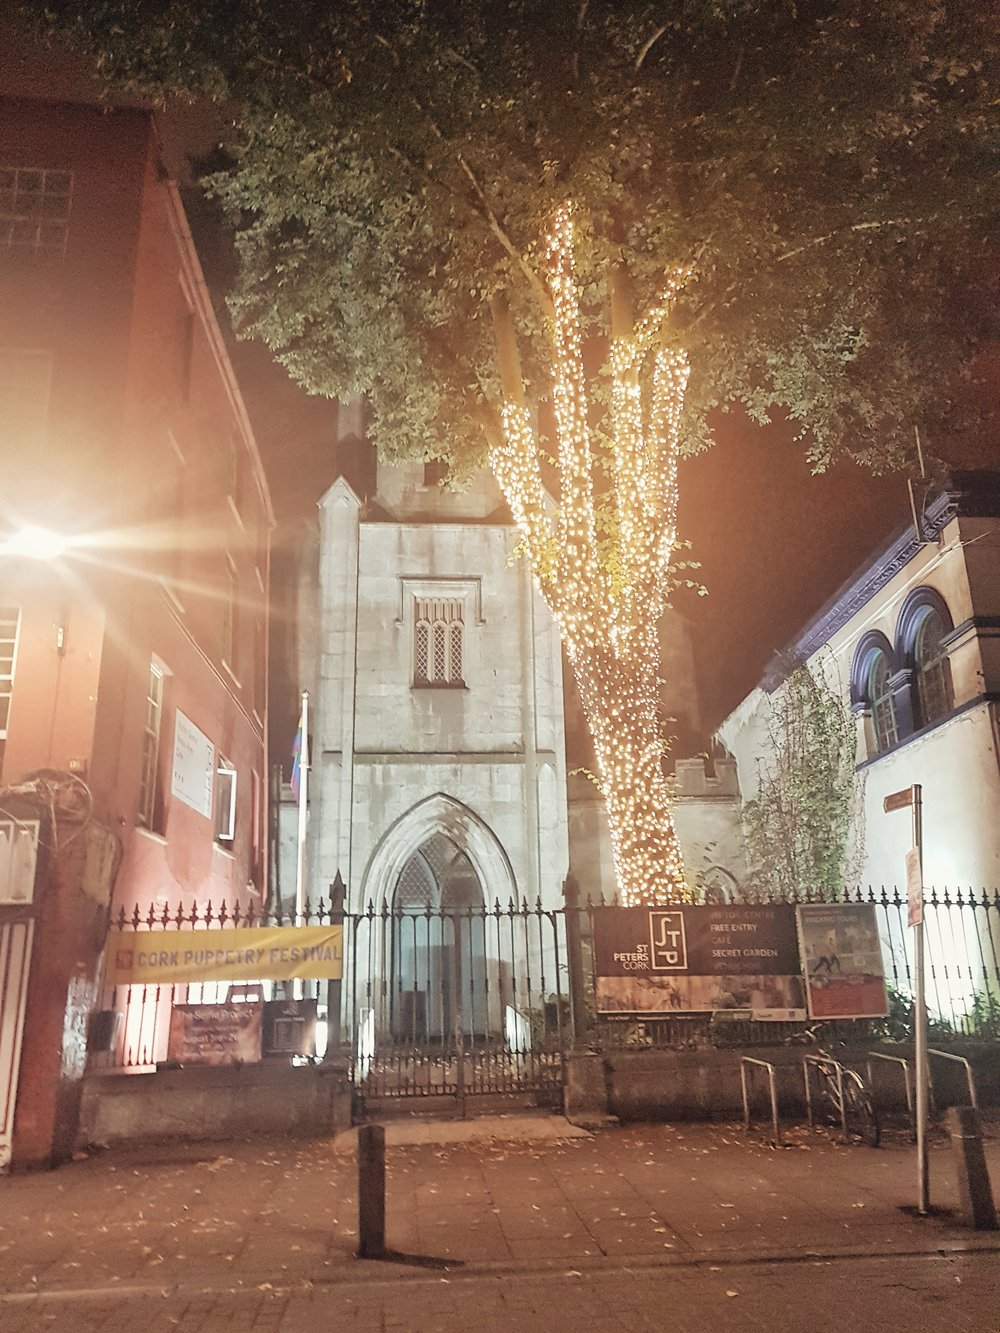 county cork. cork. ireland. irish. history. city. house sitting. old. travel. travel photography. travel photographer.  cork city at night. night time church..jpg